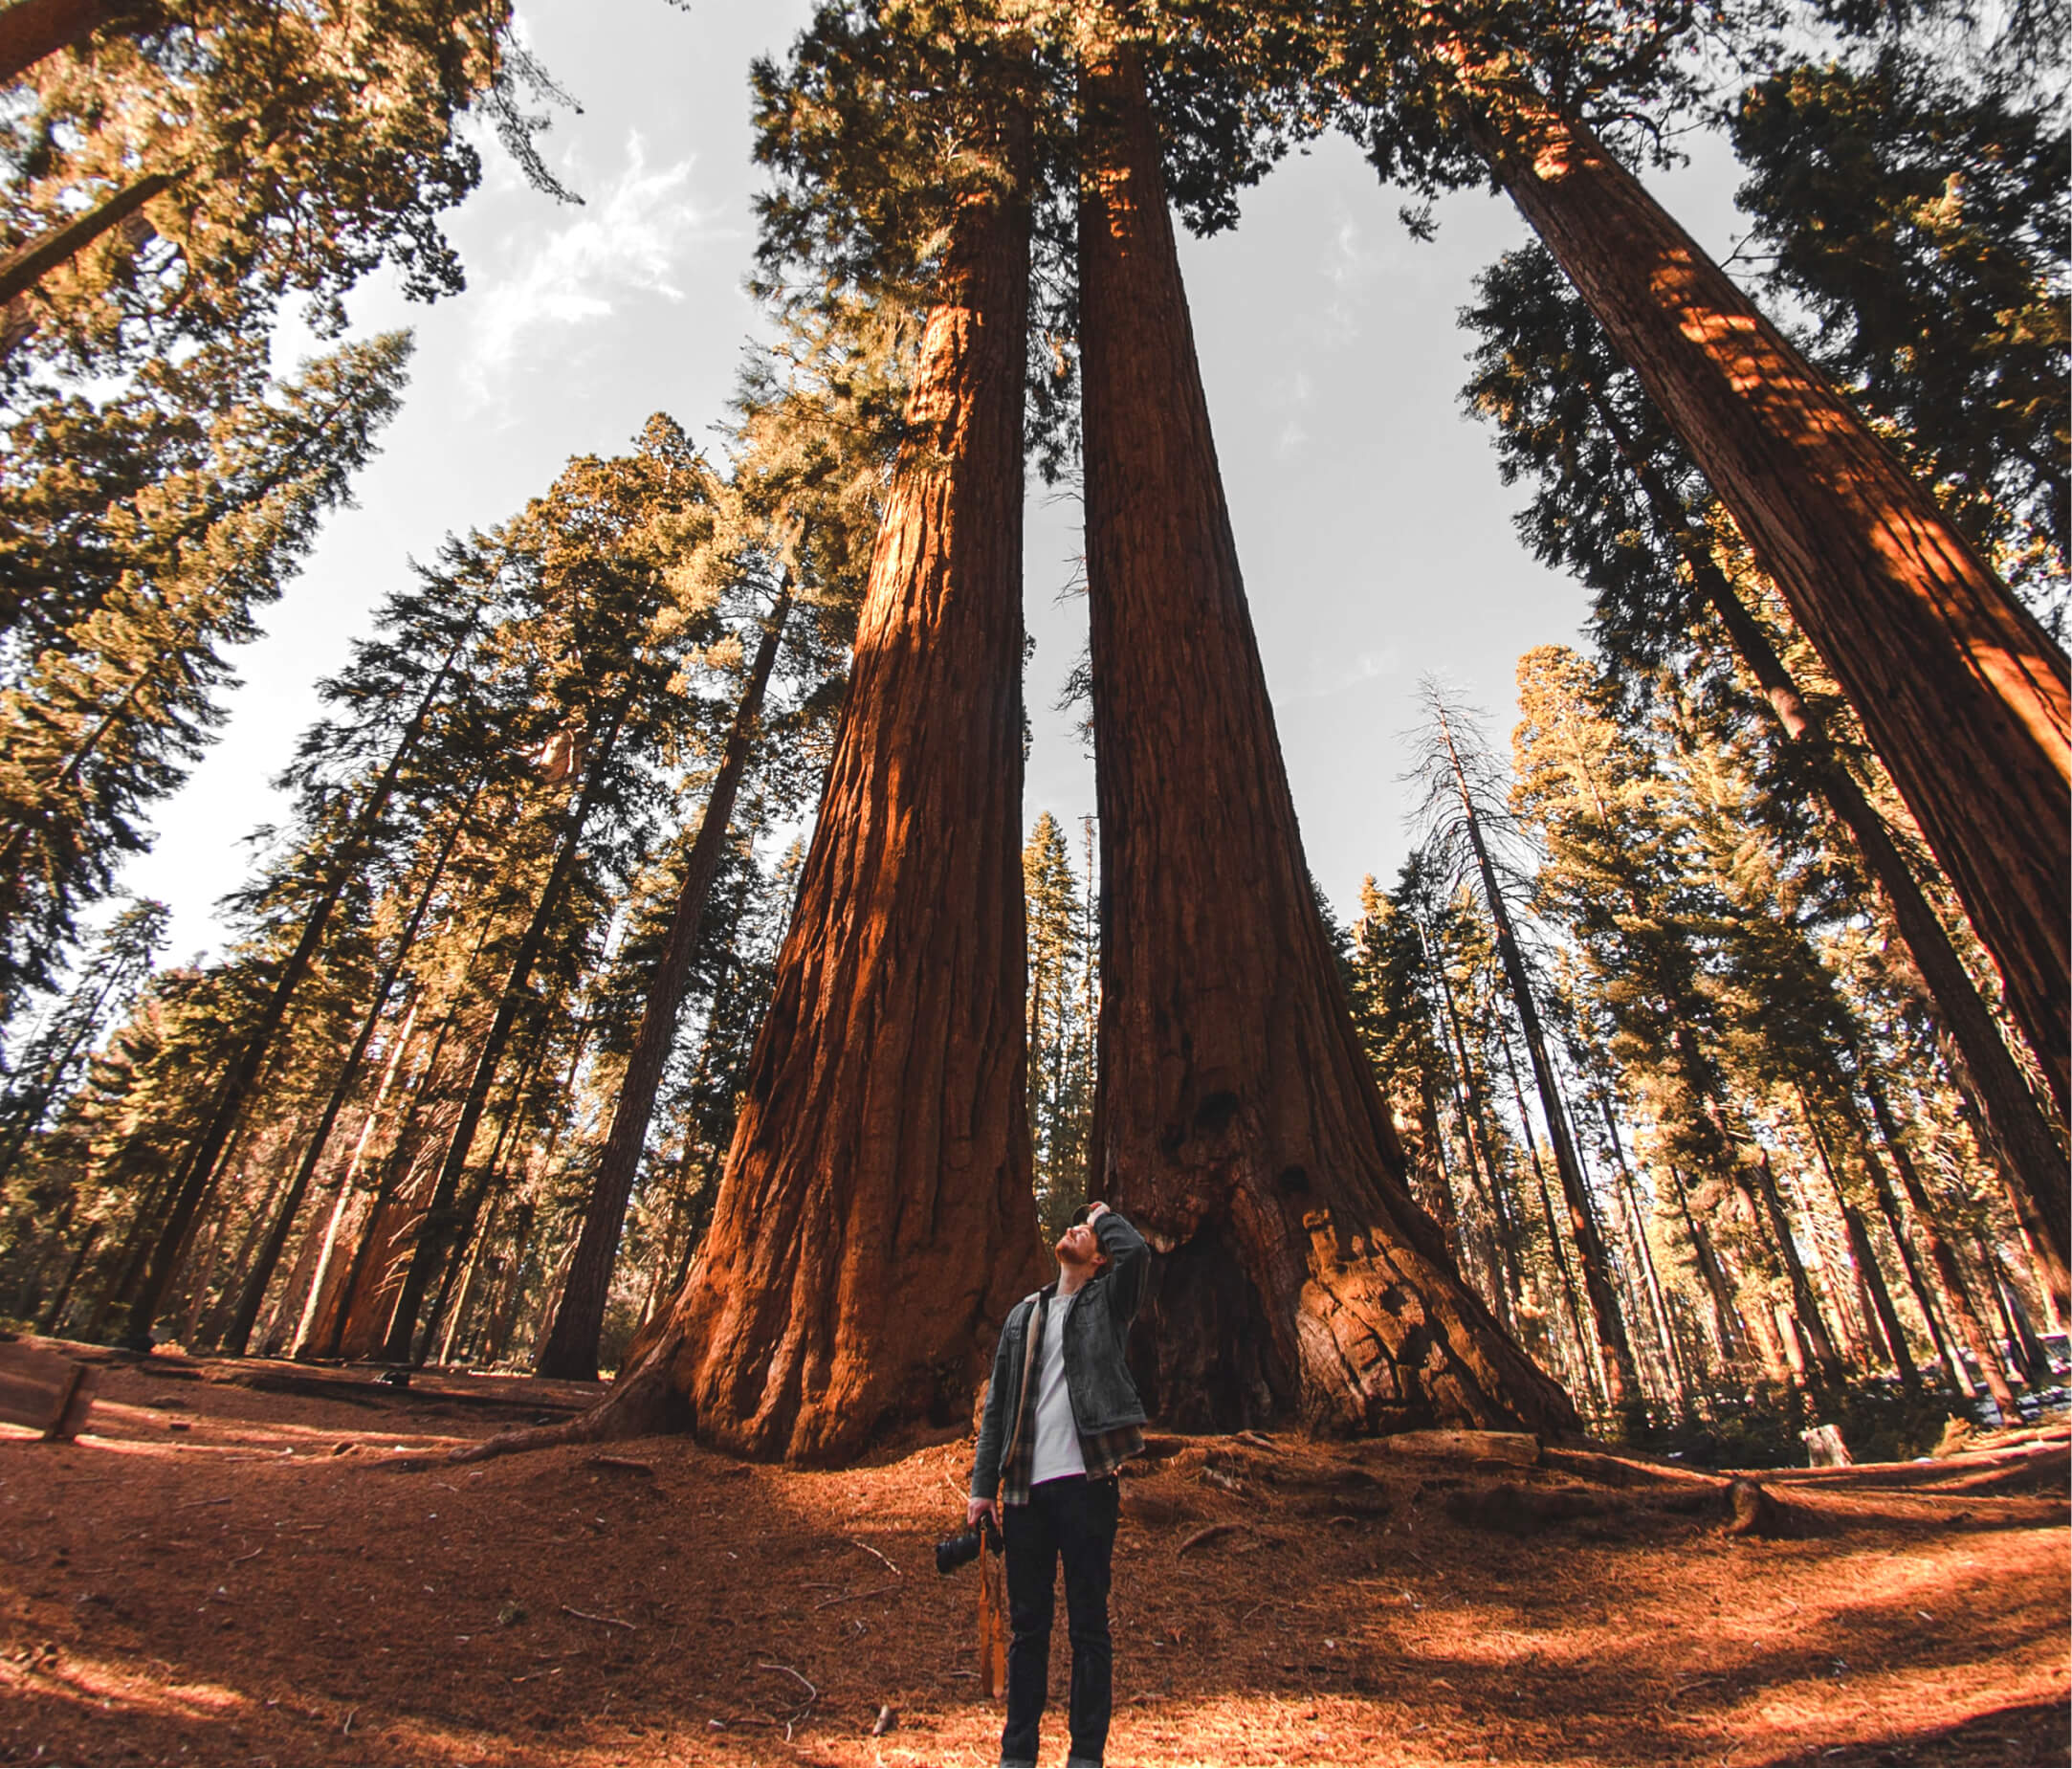 Man holding a camera while looking up at a pair of tall redwood trees in a forest.